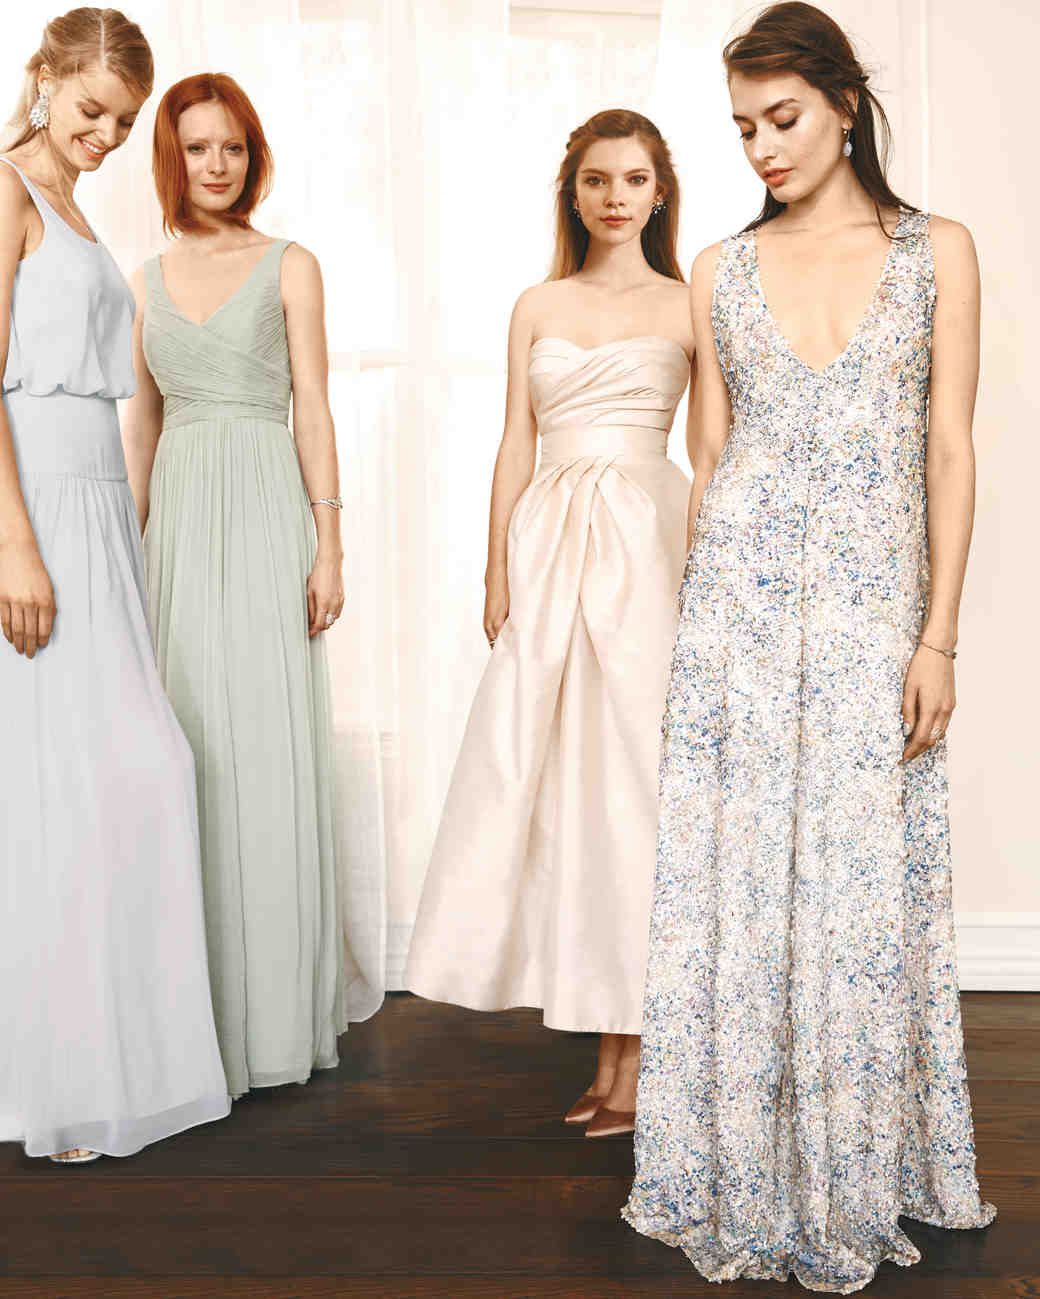 4 chic ways to mix and match your bridesmaid dresses martha 4 chic ways to mix and match your bridesmaid dresses martha stewart weddings ombrellifo Choice Image